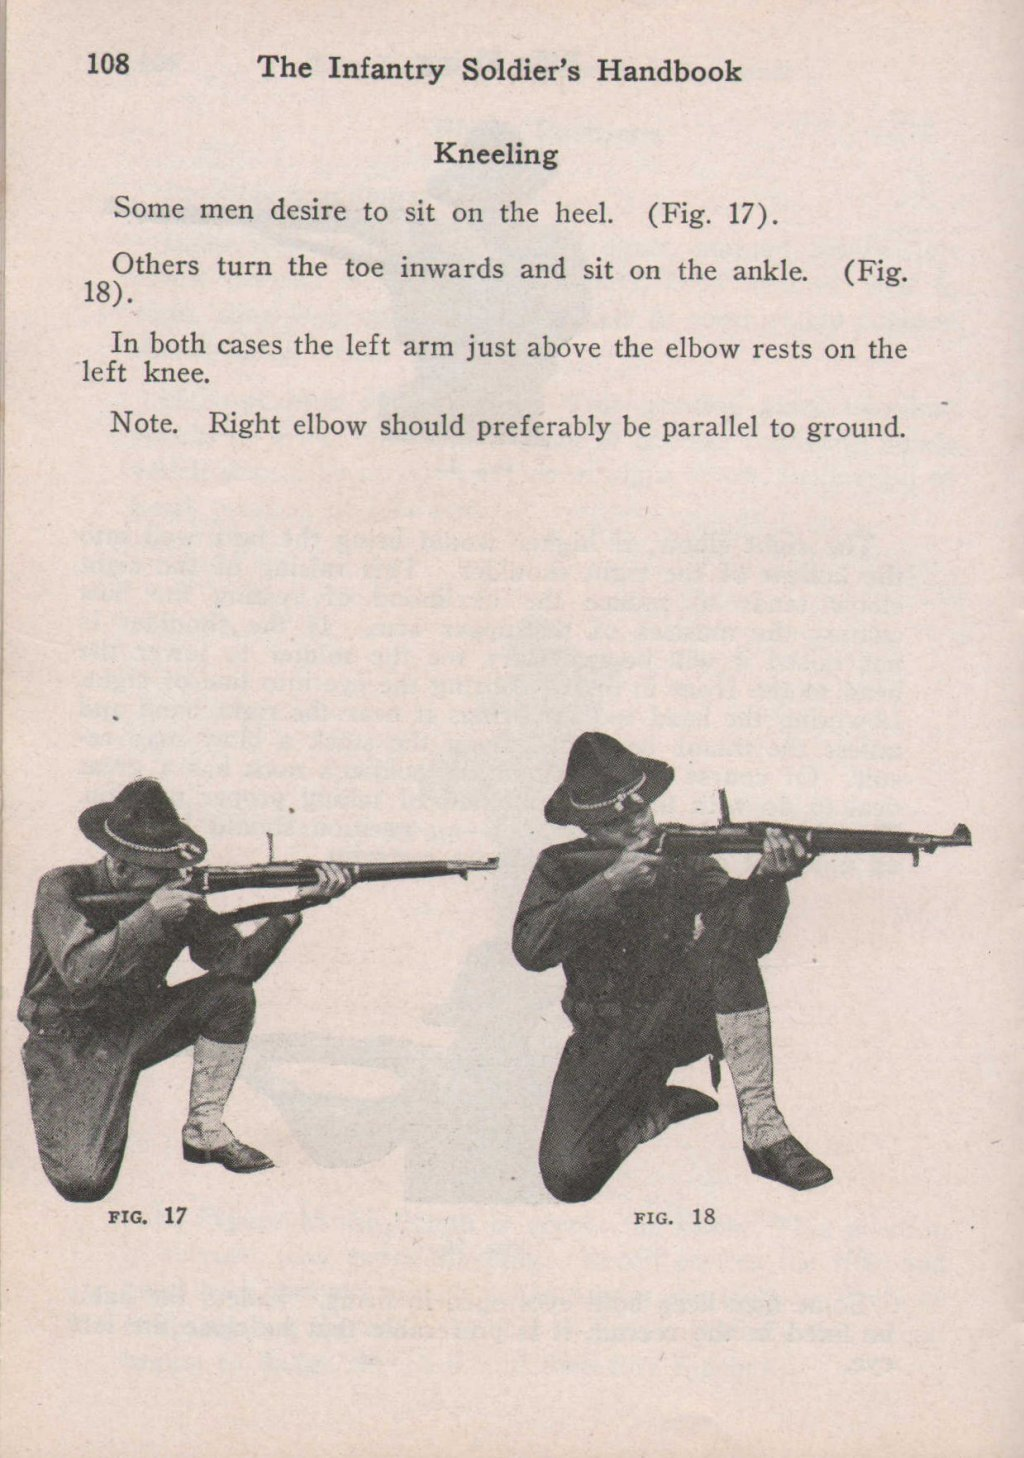 314th Infantry Regiment - Infantry Soldiers Handbook - Waldron - Page 108